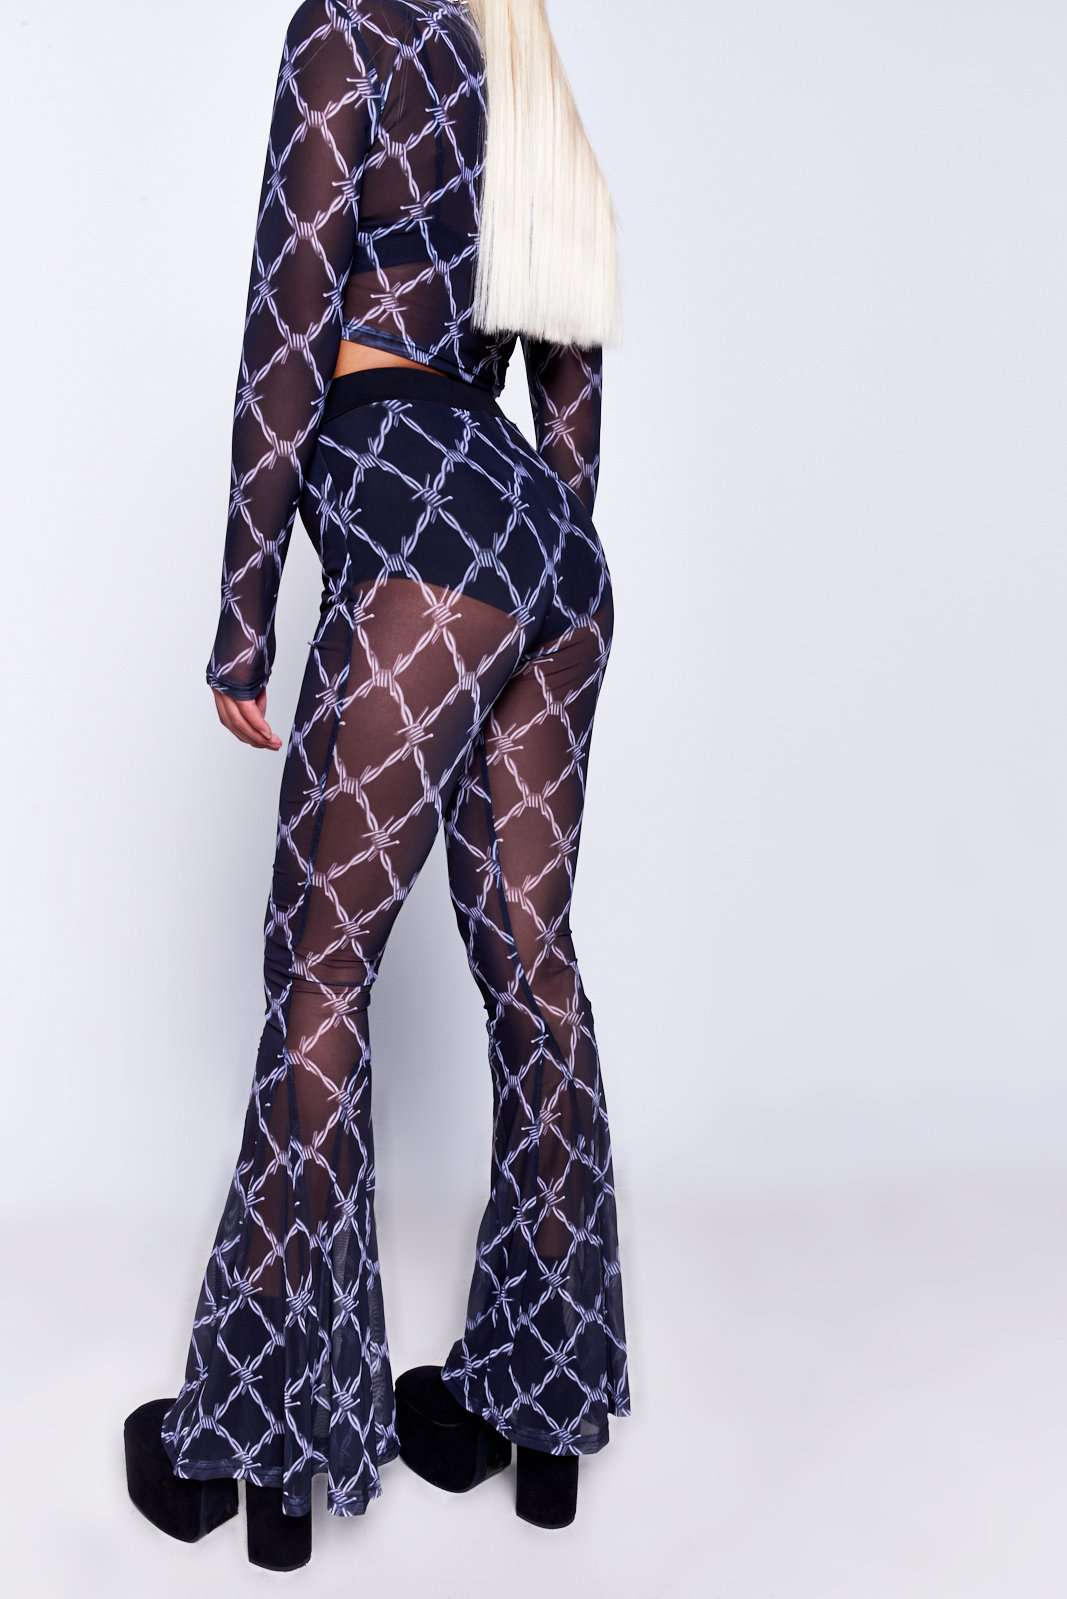 Barbed Wire Printed Mesh Flares Jaded X Dolls Kill